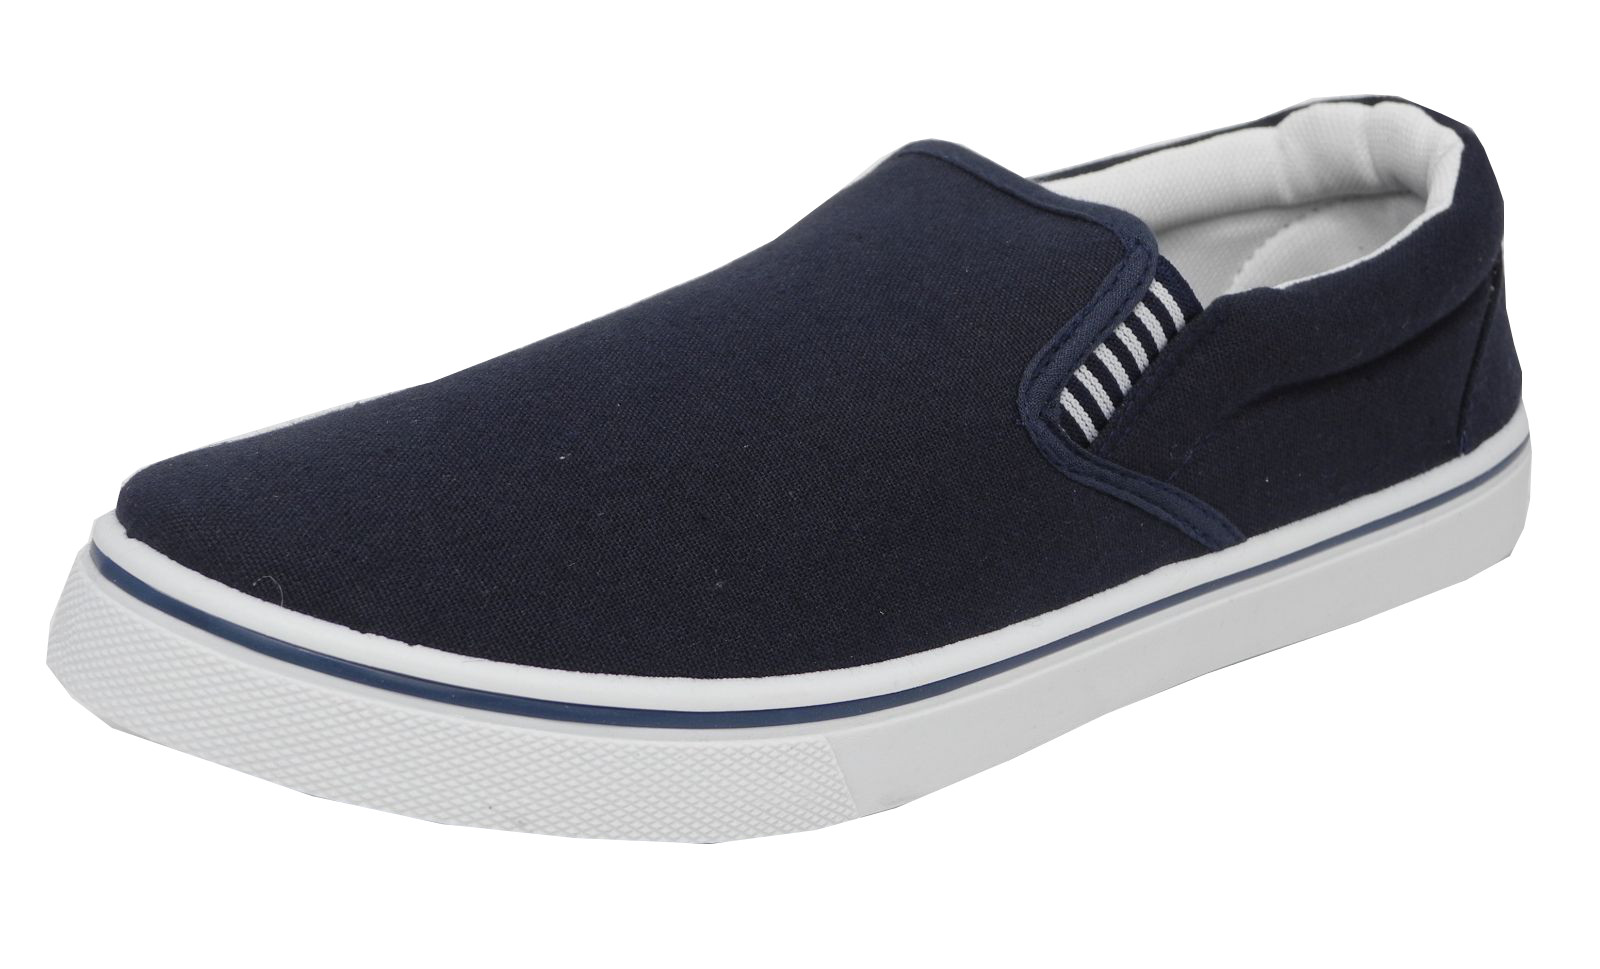 mens boys canvas boat yachting deck shoes slip on pumps